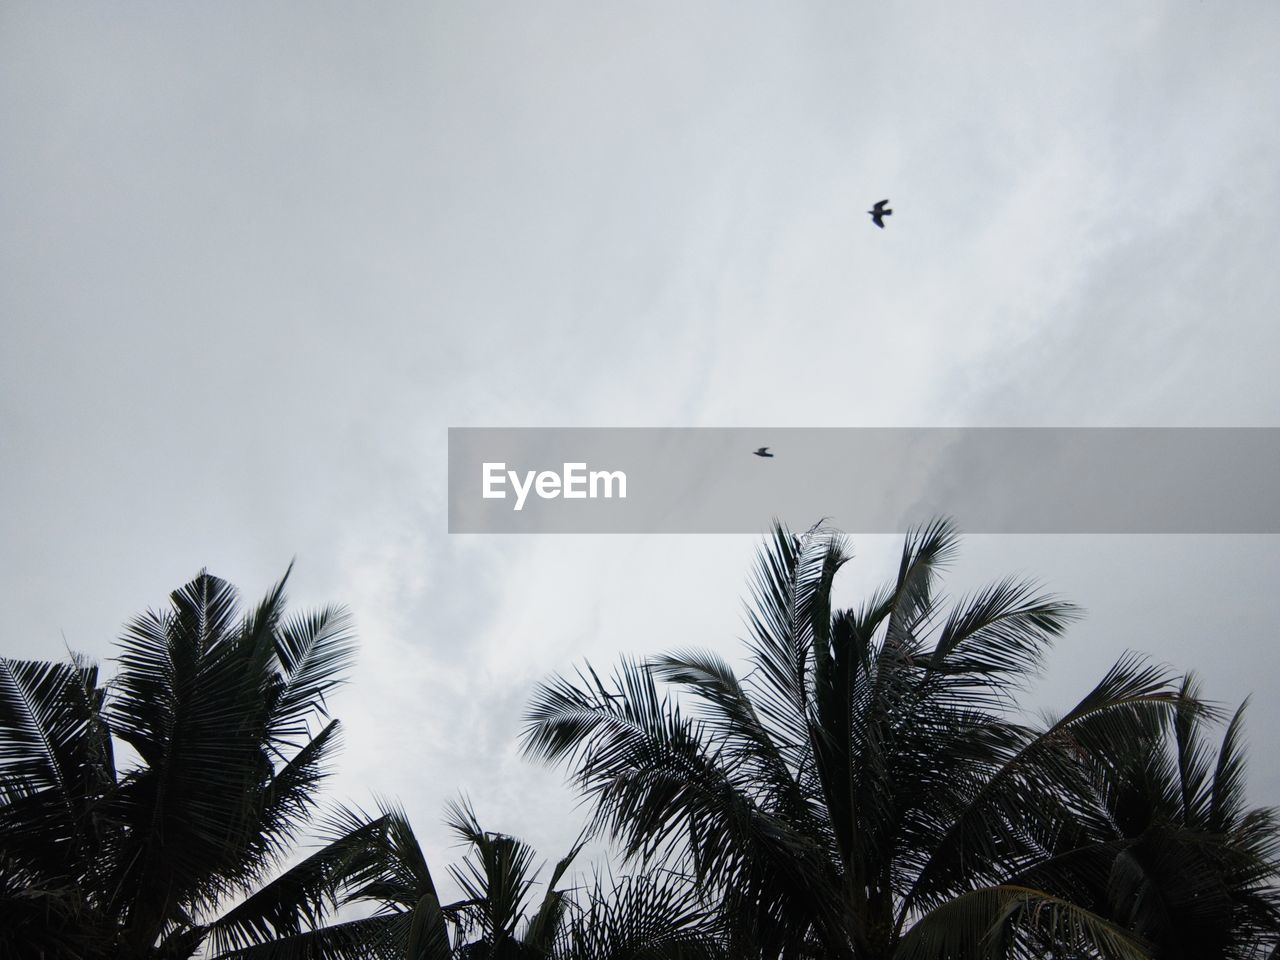 sky, plant, tree, low angle view, palm tree, flying, tropical climate, vertebrate, bird, cloud - sky, animal themes, nature, animals in the wild, animal, day, growth, animal wildlife, mid-air, no people, beauty in nature, outdoors, palm leaf, coconut palm tree